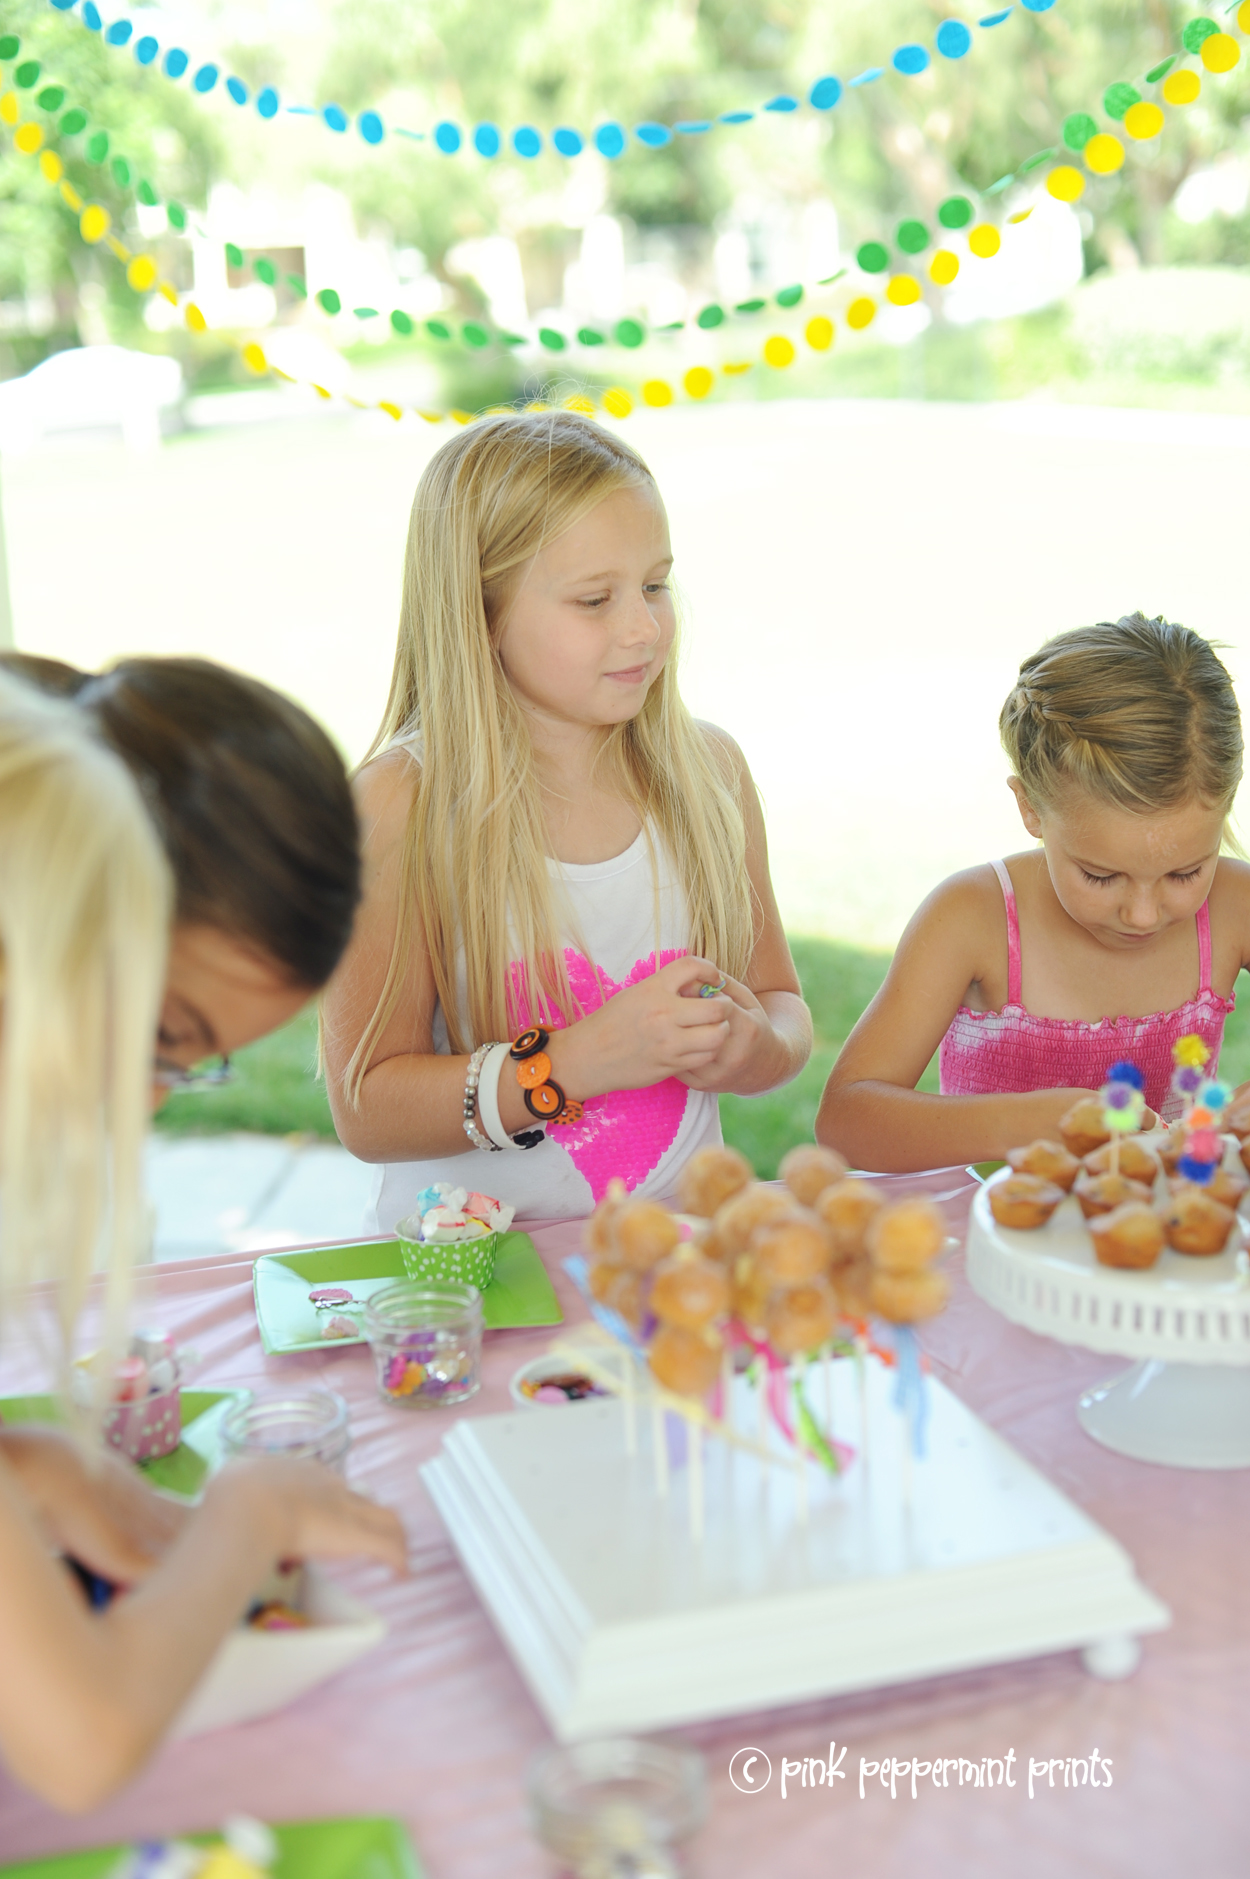 Arts and crafts party for little girls summer party ideas birthday party ideas